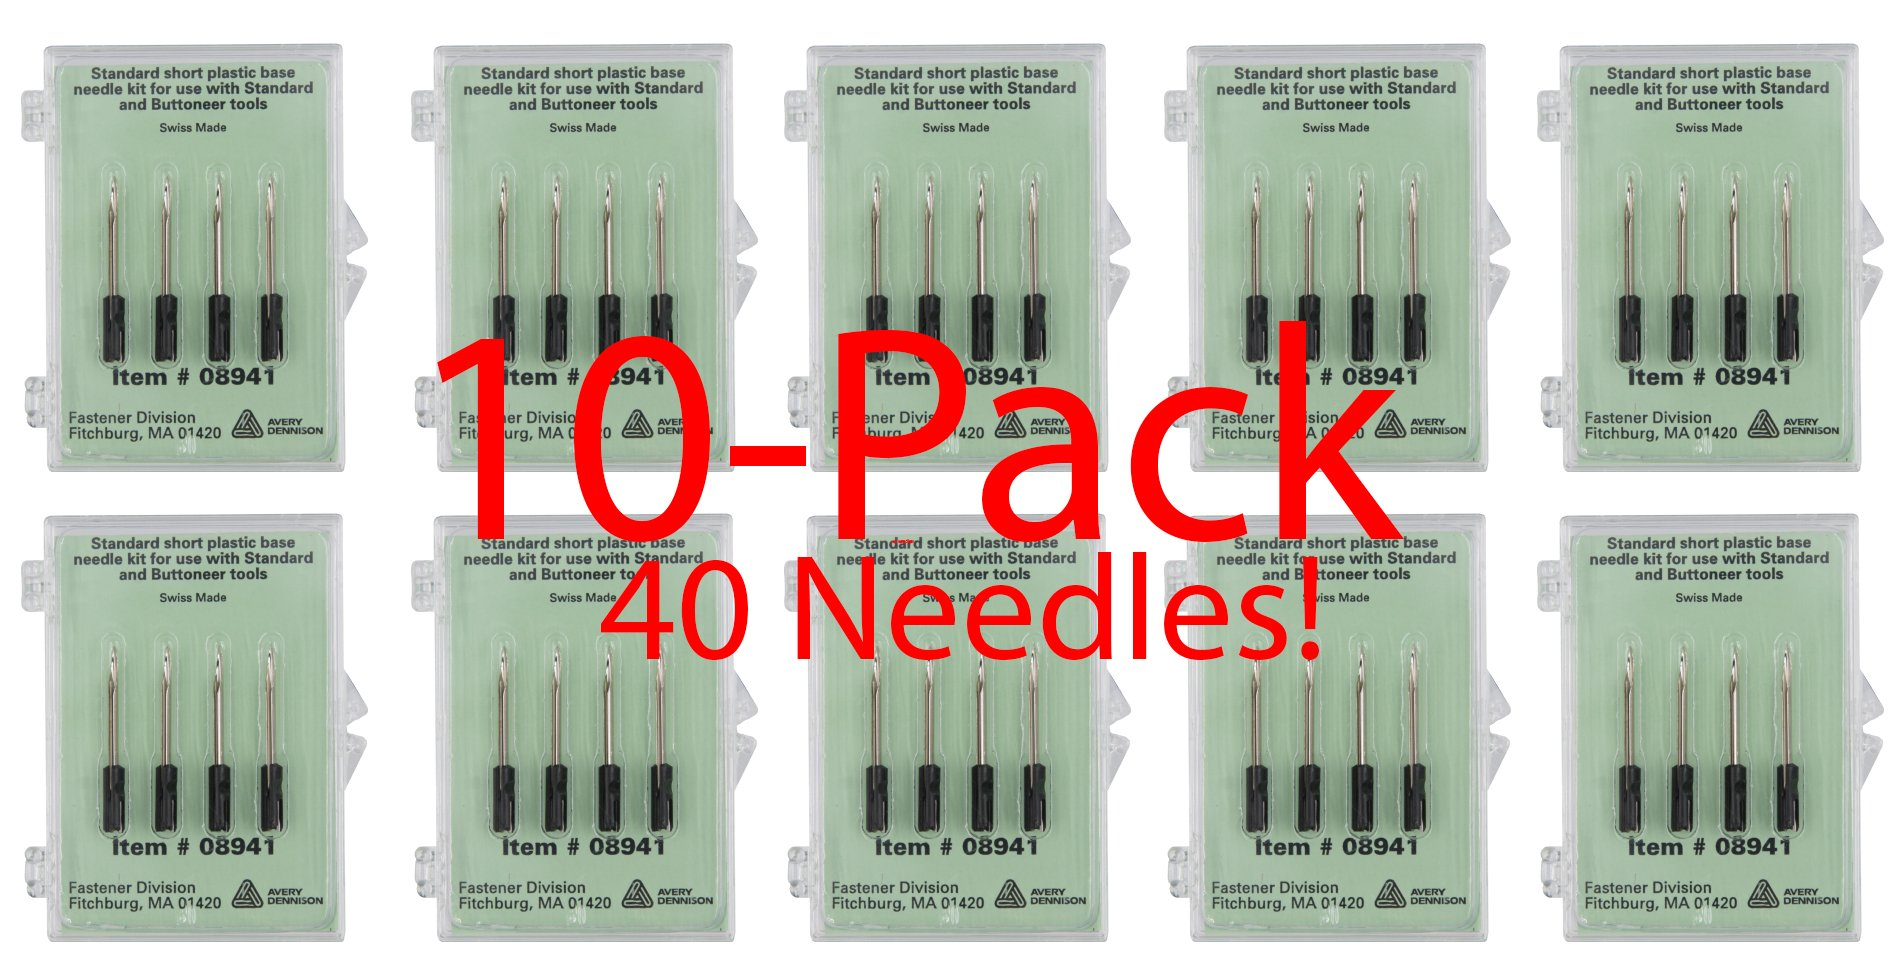 Avery Dennison Standard Tagging Gun Replacement Needles,10-Pack - Each Pack Contains 4 Needless for a Total of 40 Genuine Avery Dennison # 08941 Needles by Avery Dennison